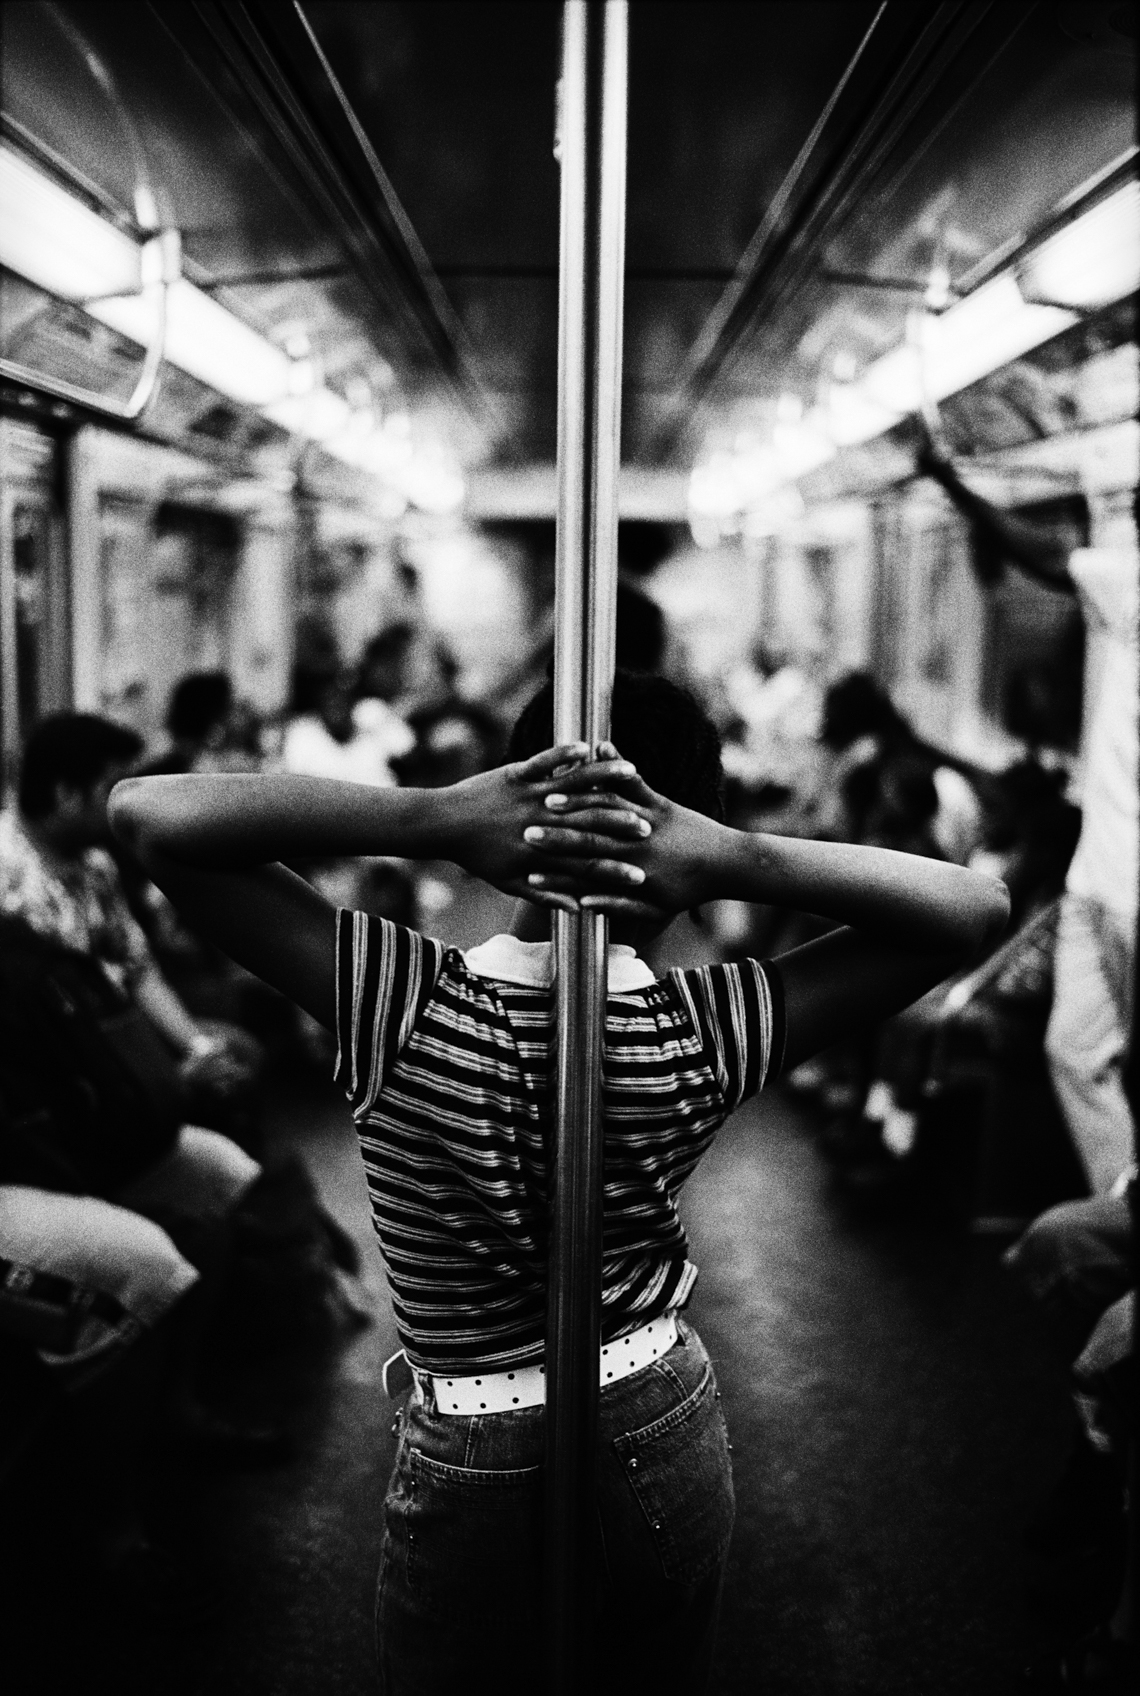 A-Train, Harlem, New York City, 2003 (from Dear New Yorker)